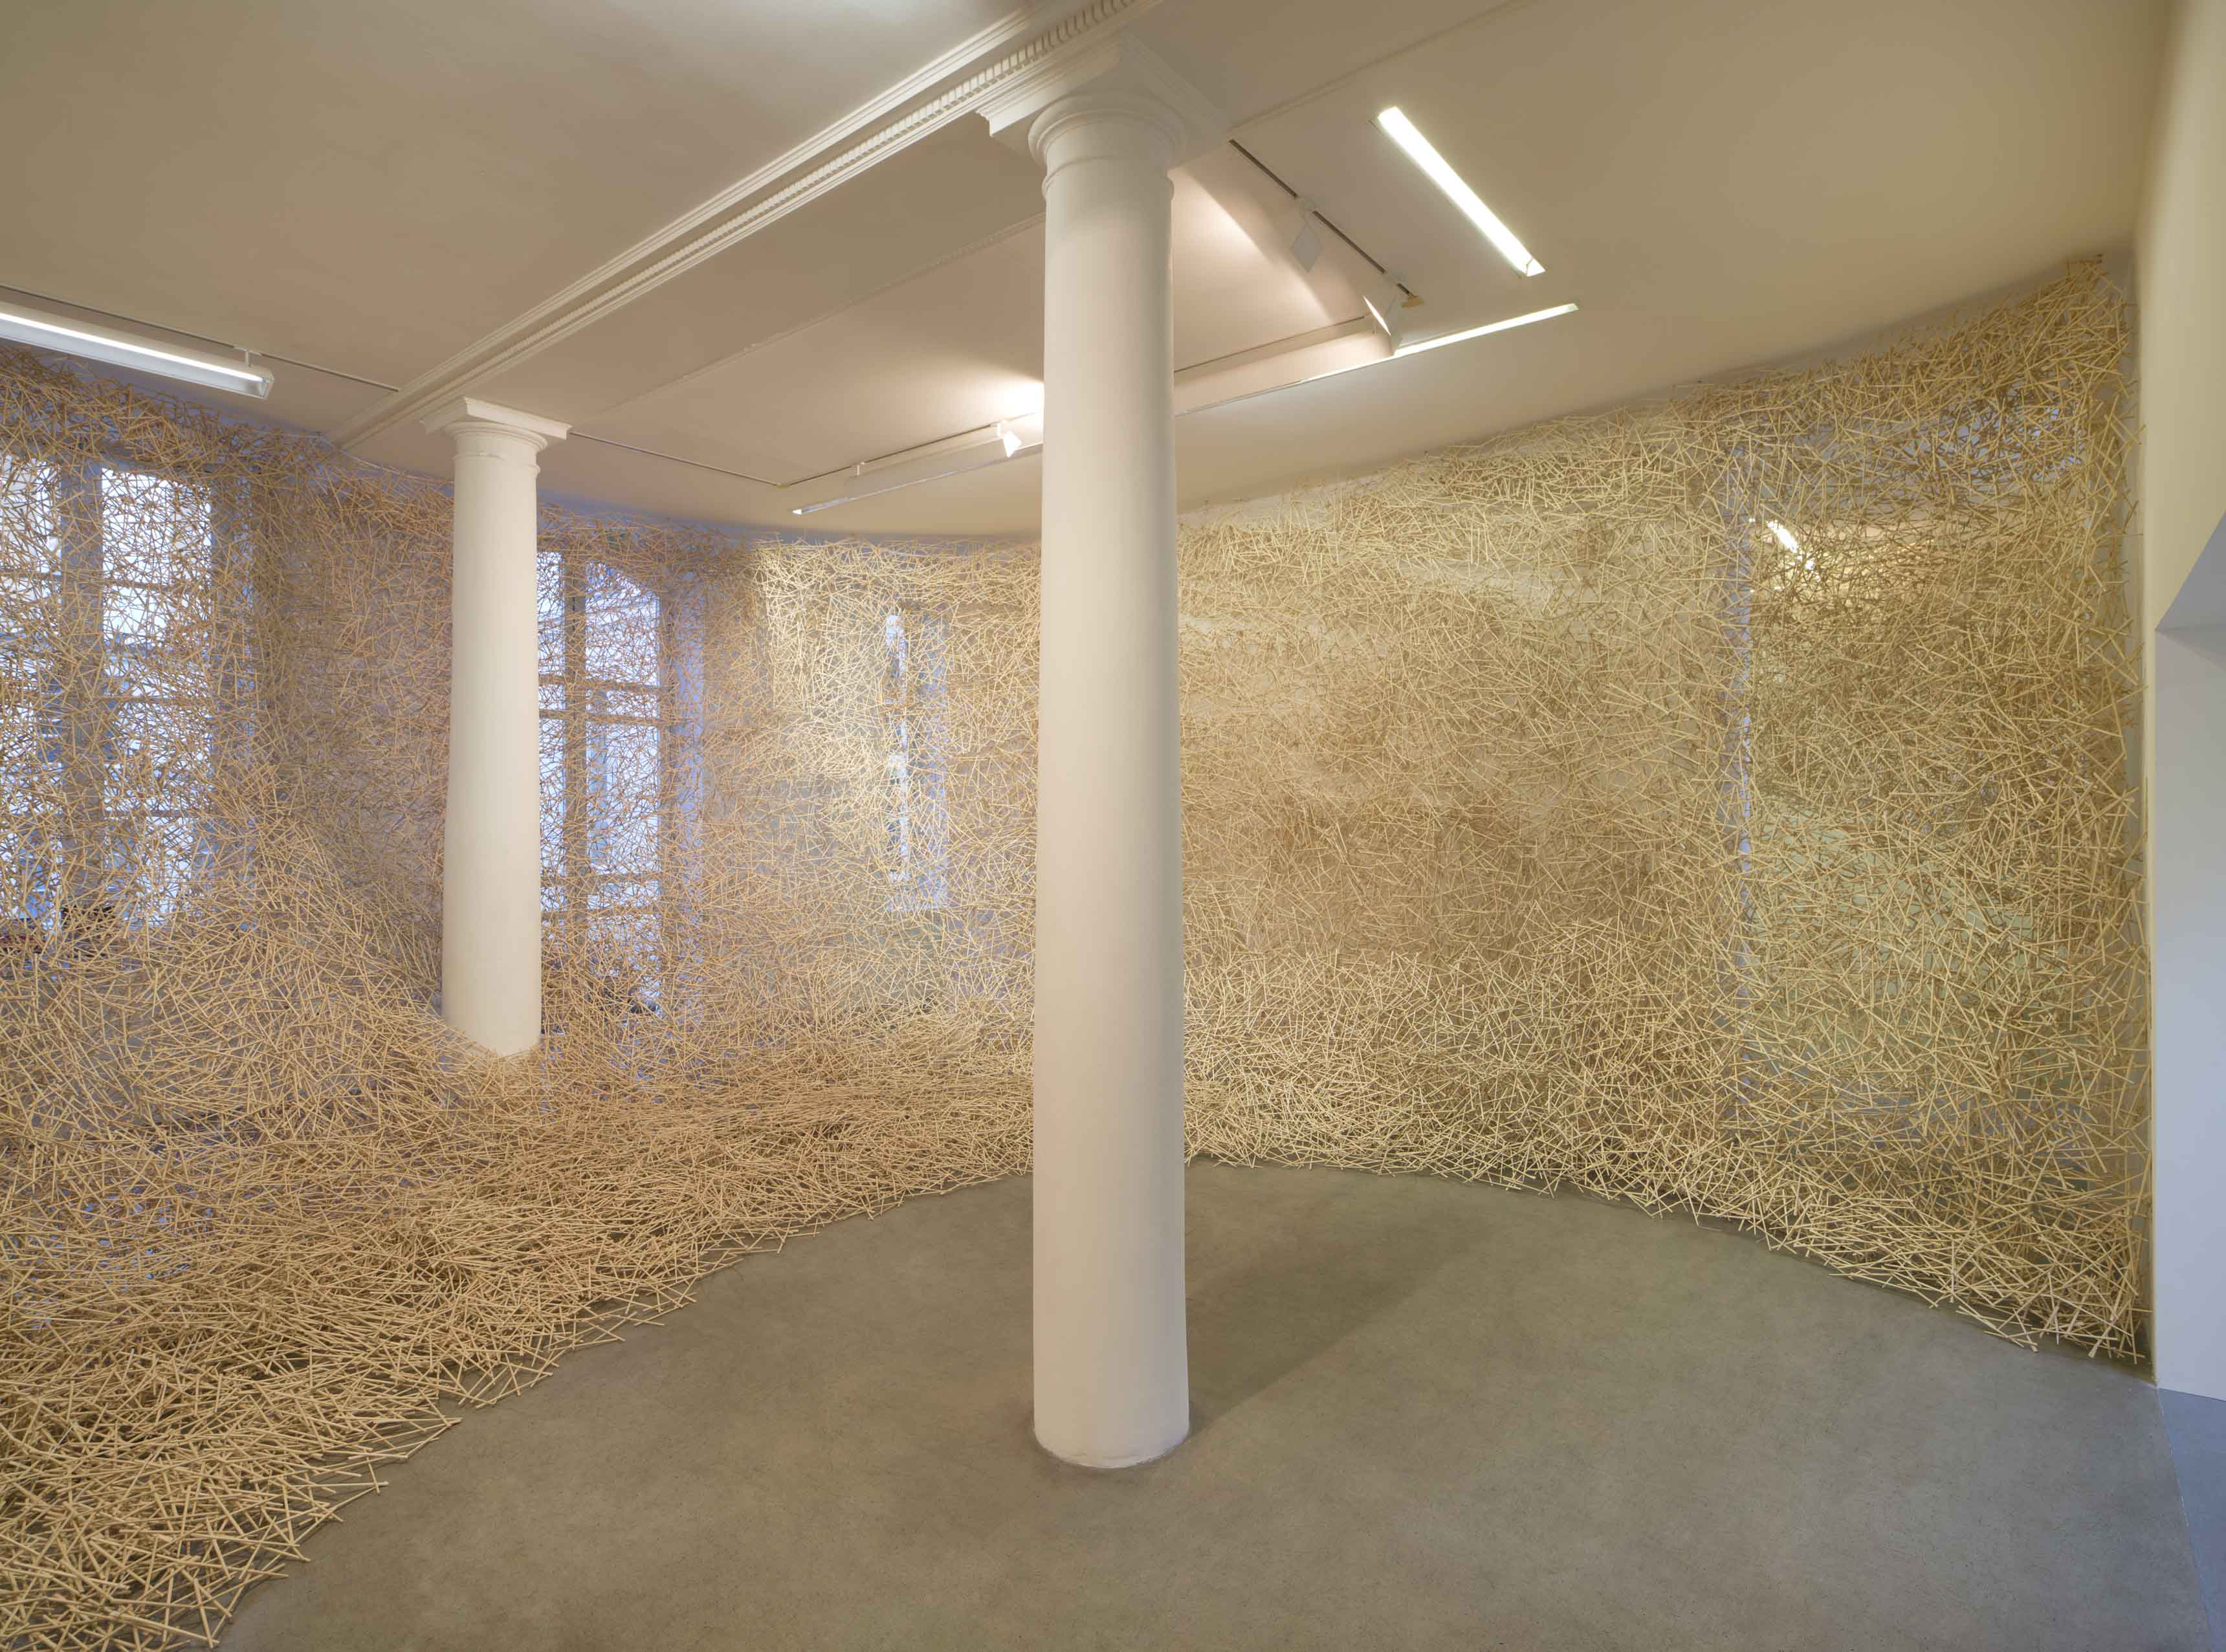 Tadashi Kawamata  Nest, 2017 Baguettes, colle. Dimensions variables   Vue de l'exposition « Nest », kamel mennour (47 rue Saint André des arts), Paris 6, 2017‑2018  © Tadashi Kawamata Photo. archives kamel mennour Courtesy the artist and kamel mennour Paris/London